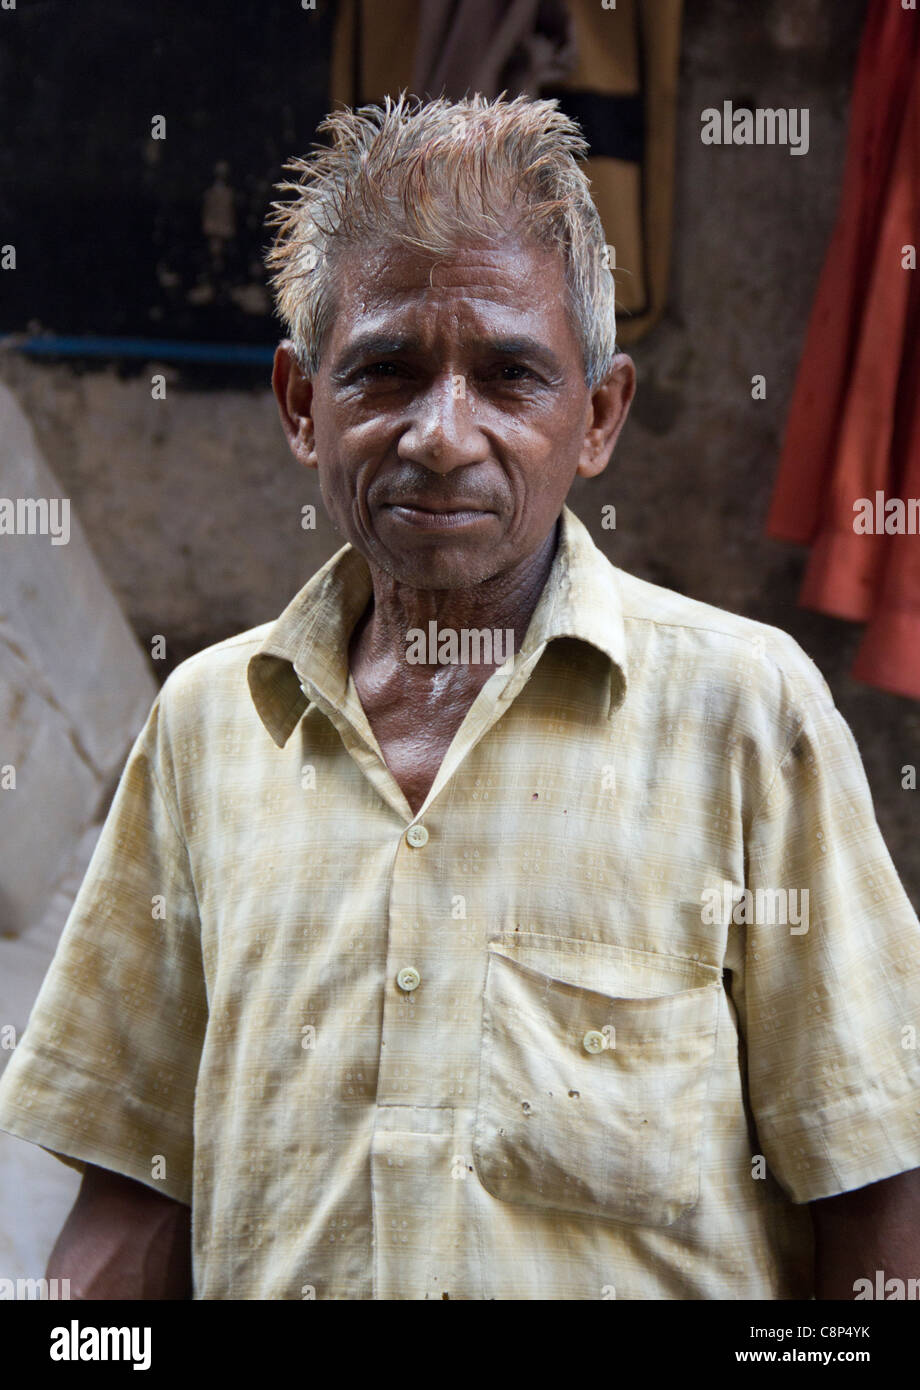 Stall owner in the famous Chandni Chowk market in New Delhi, India - Stock Image